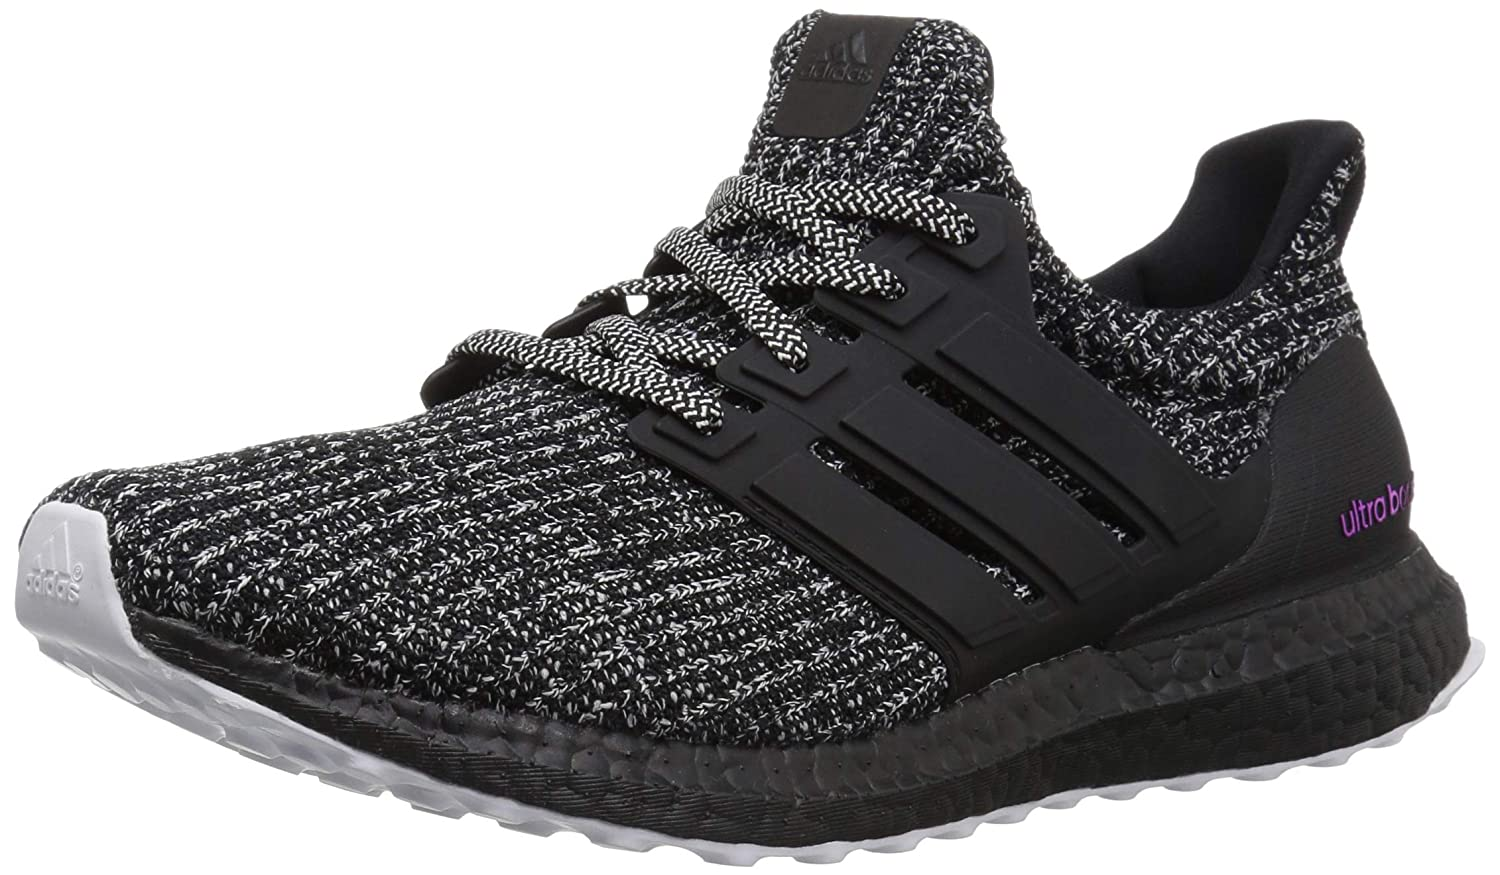 timeless design 67f9c 83e06 Amazon.com   adidas Men s Ultraboost   Fashion Sneakers